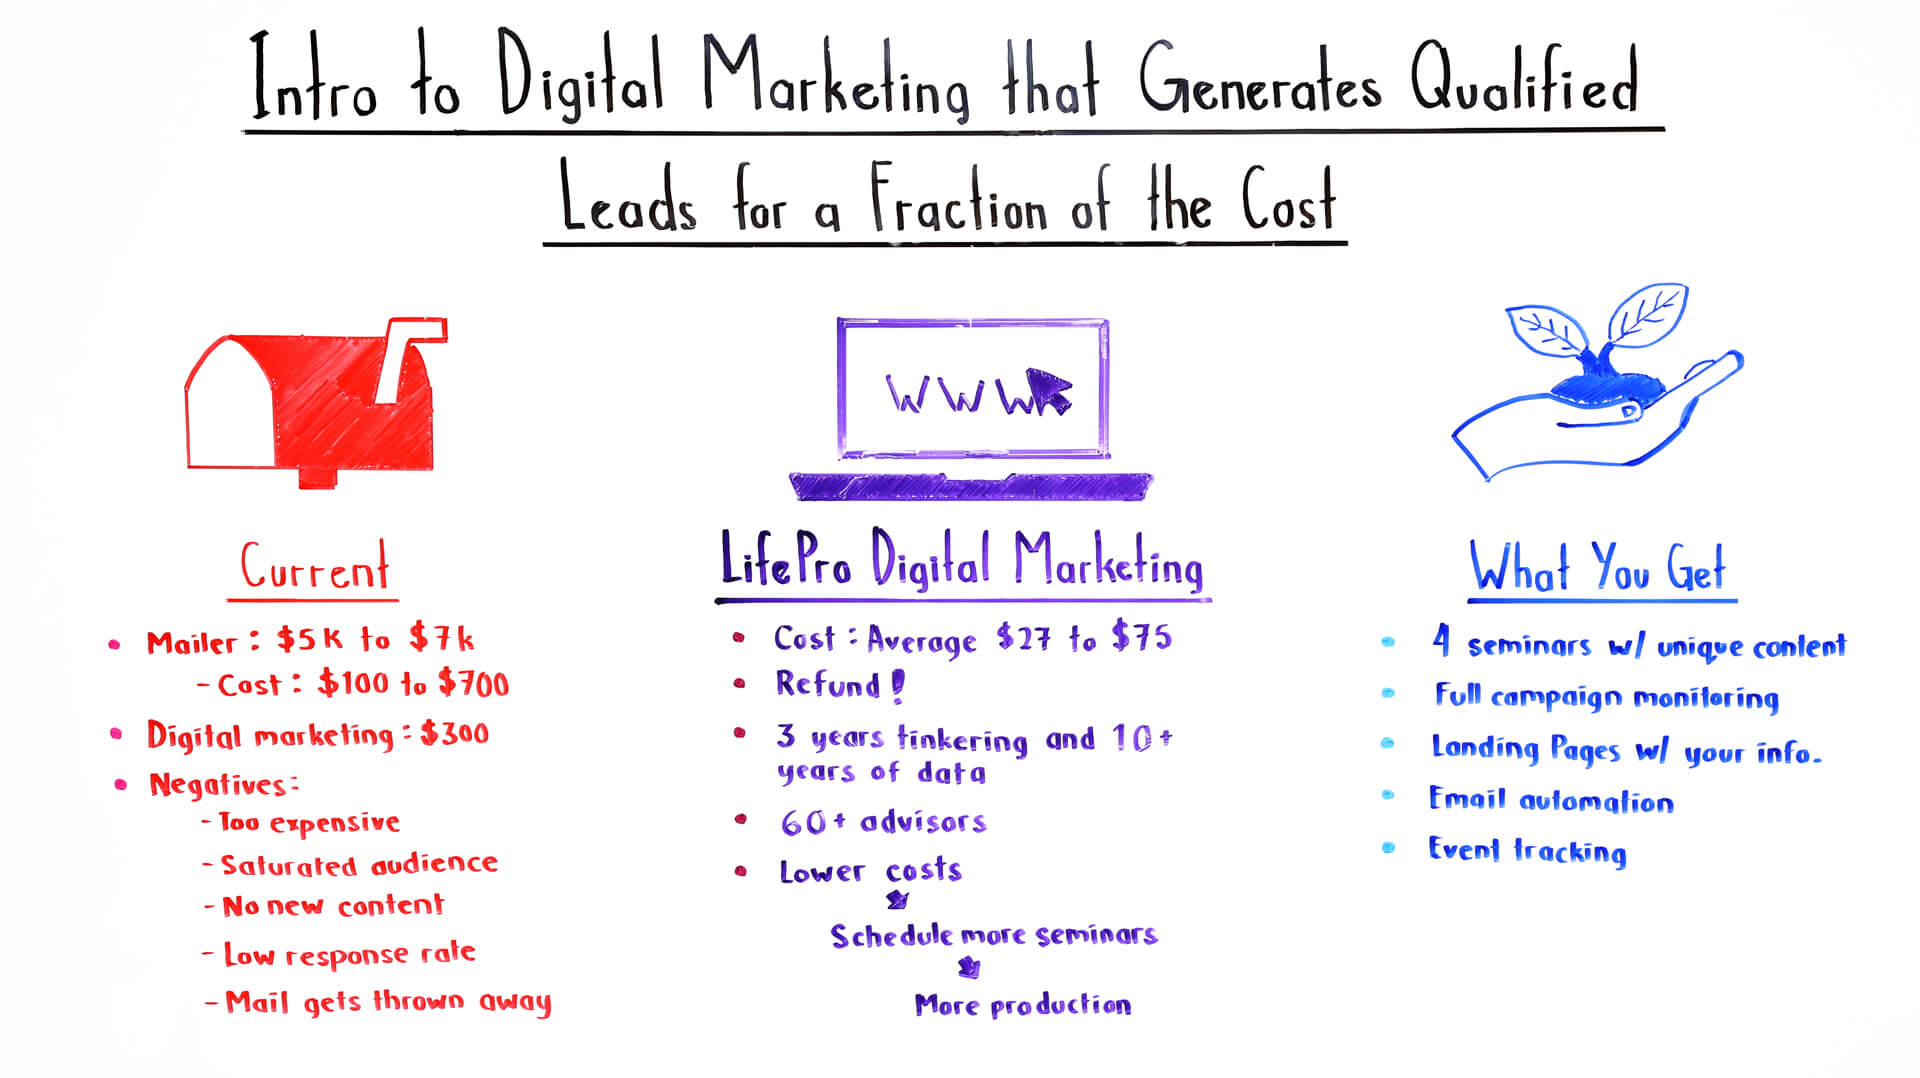 Intro to Digital Marketing that Generates Qualified Leads for a Fraction of the Cost